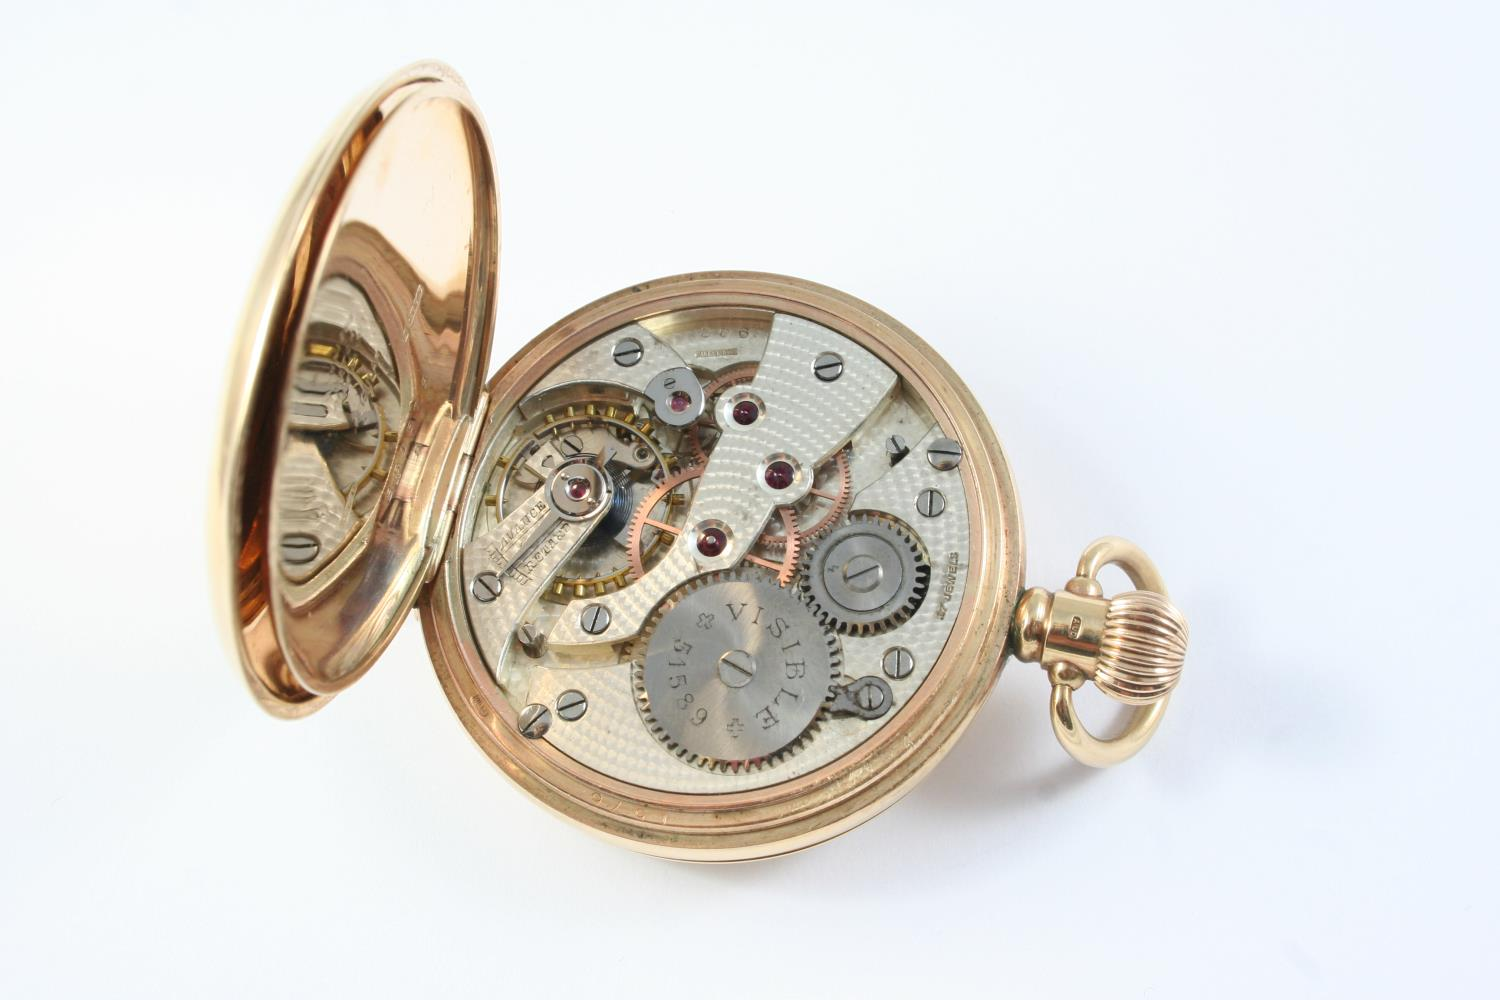 A 9CT GOLD HALF HUNTING CASED POCKET WATCH the white enamel dial with Roman numerals and - Image 2 of 5